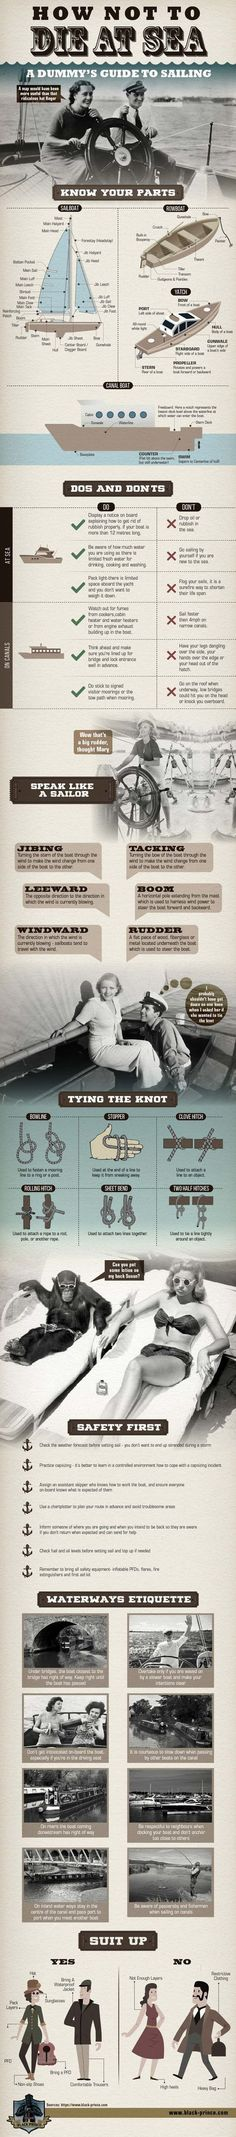 A dummy's guide to sailing - Black Prince Holidays